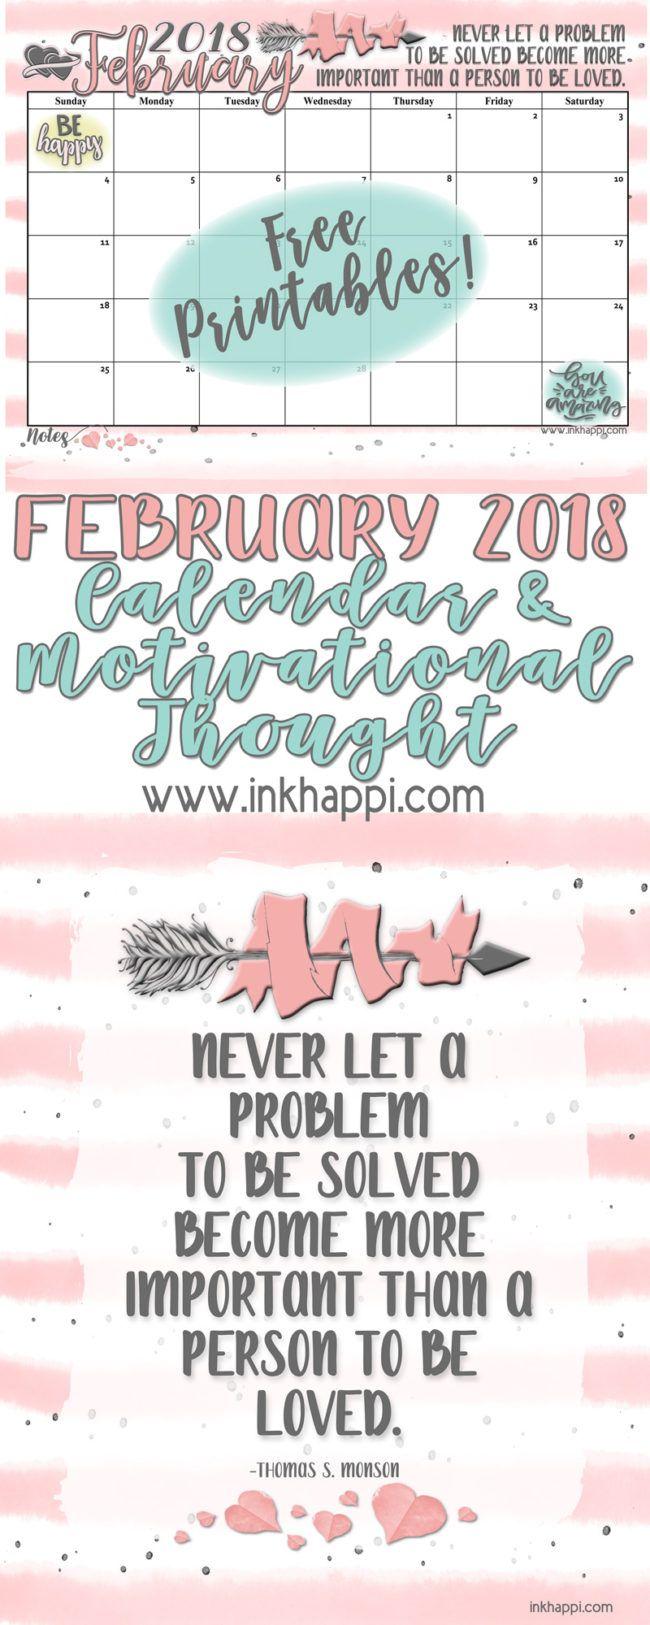 Cute February 2018 Calendar from inkhappi with a motivational thought. #freeprintables #calendar #February